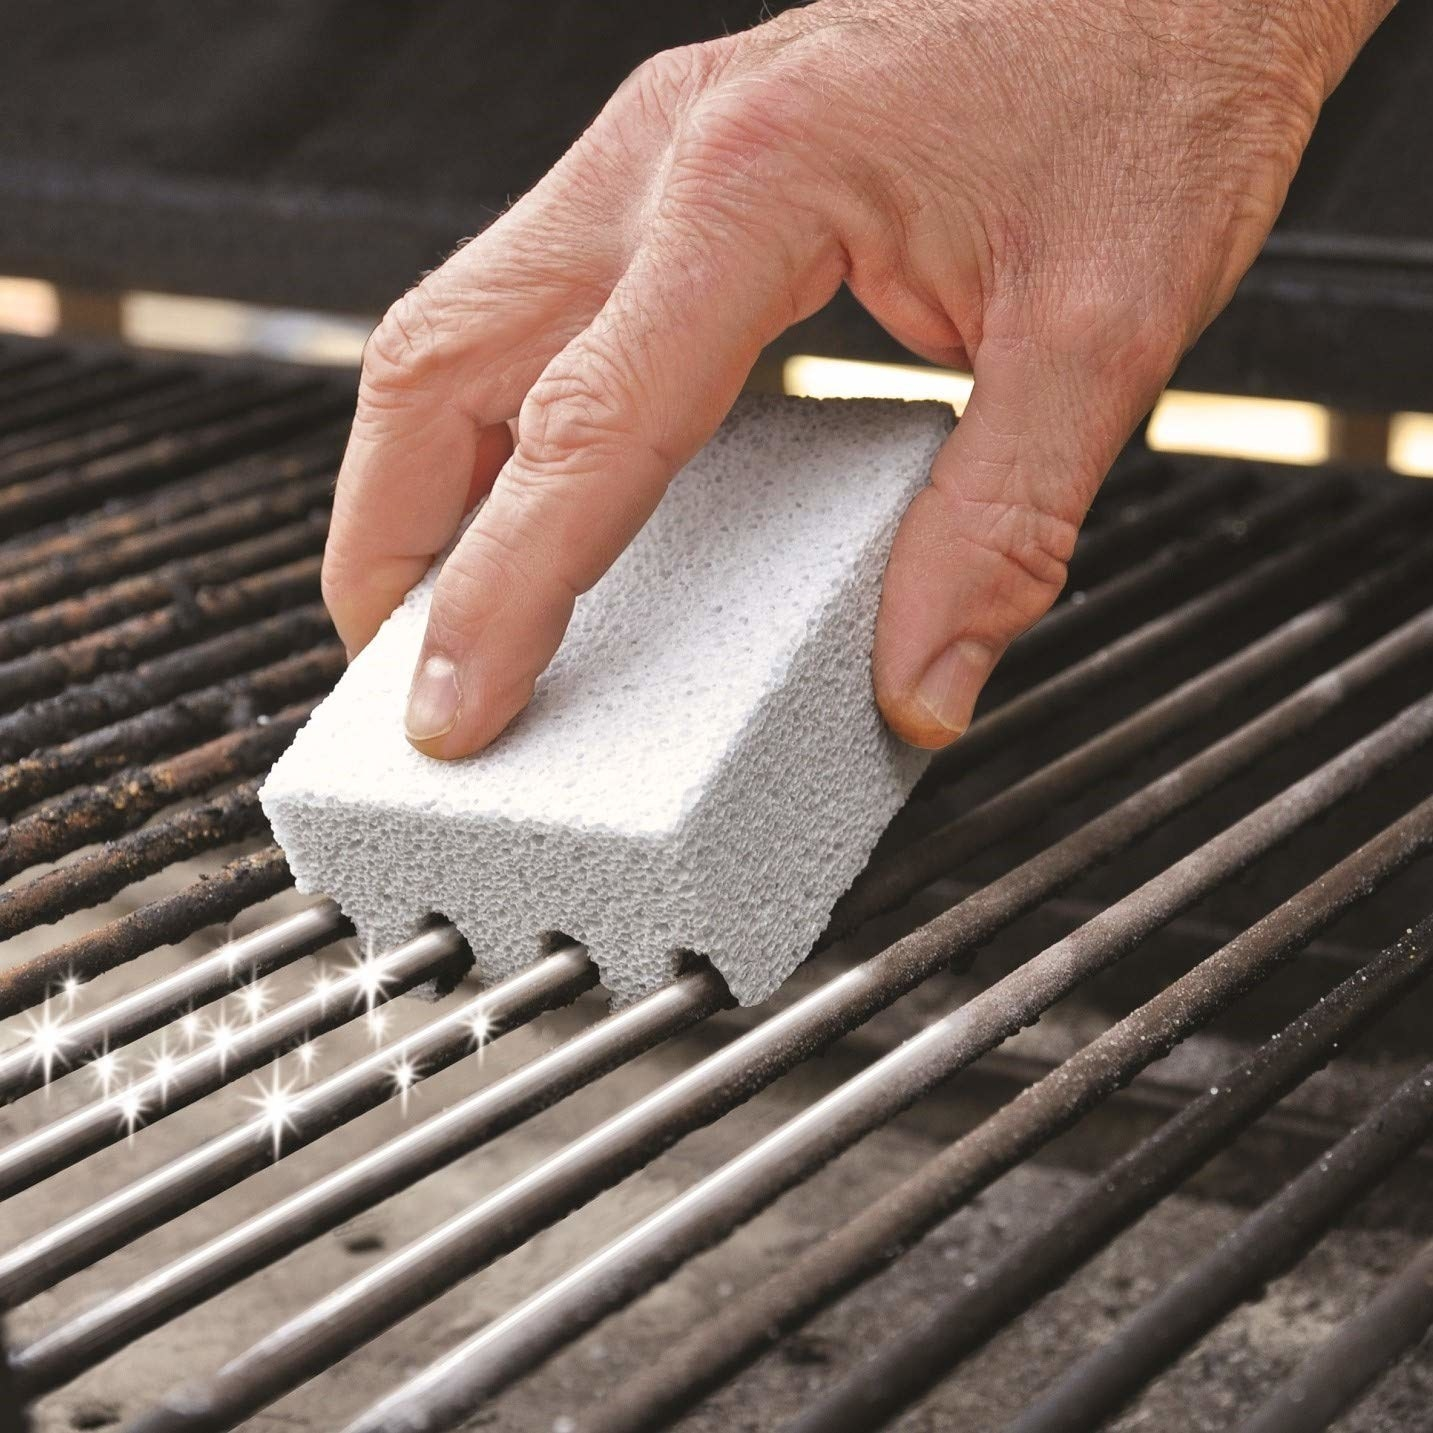 Close up image of the scrubber cleaning a grill